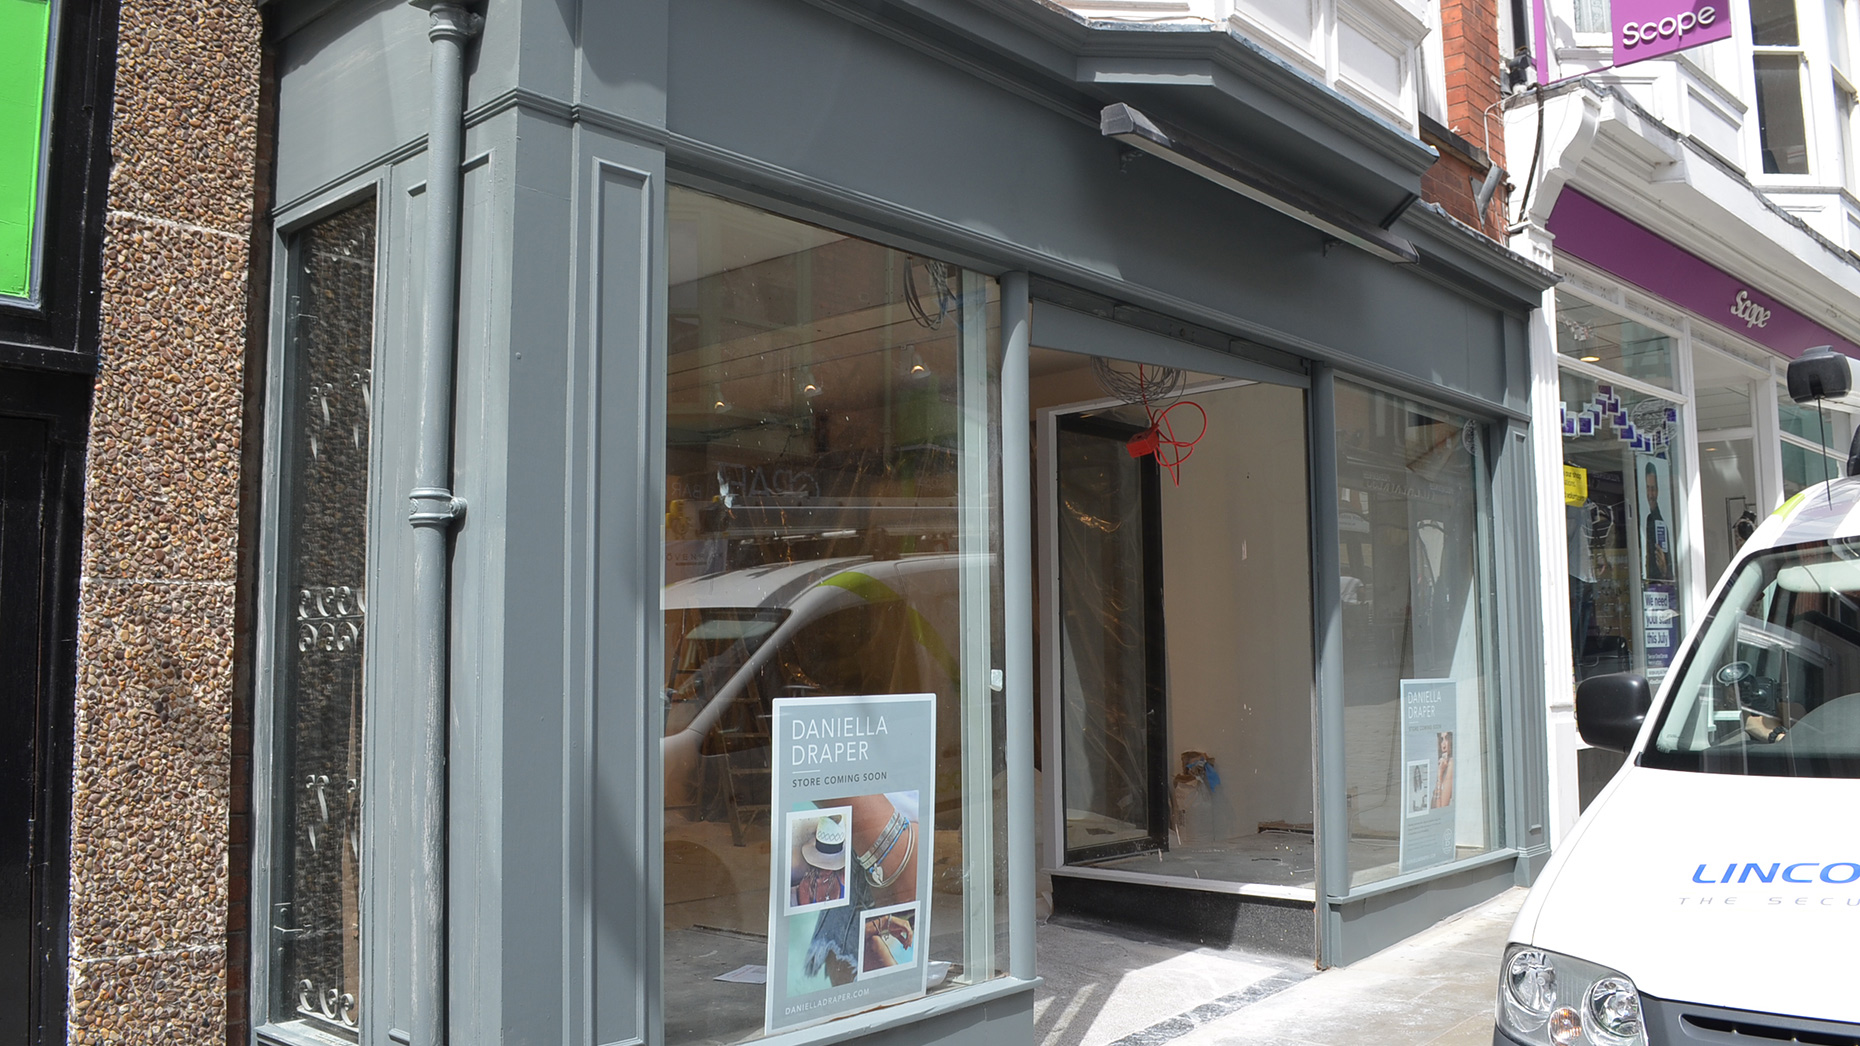 A new bespoke jewellery store to open on Lincoln High Street